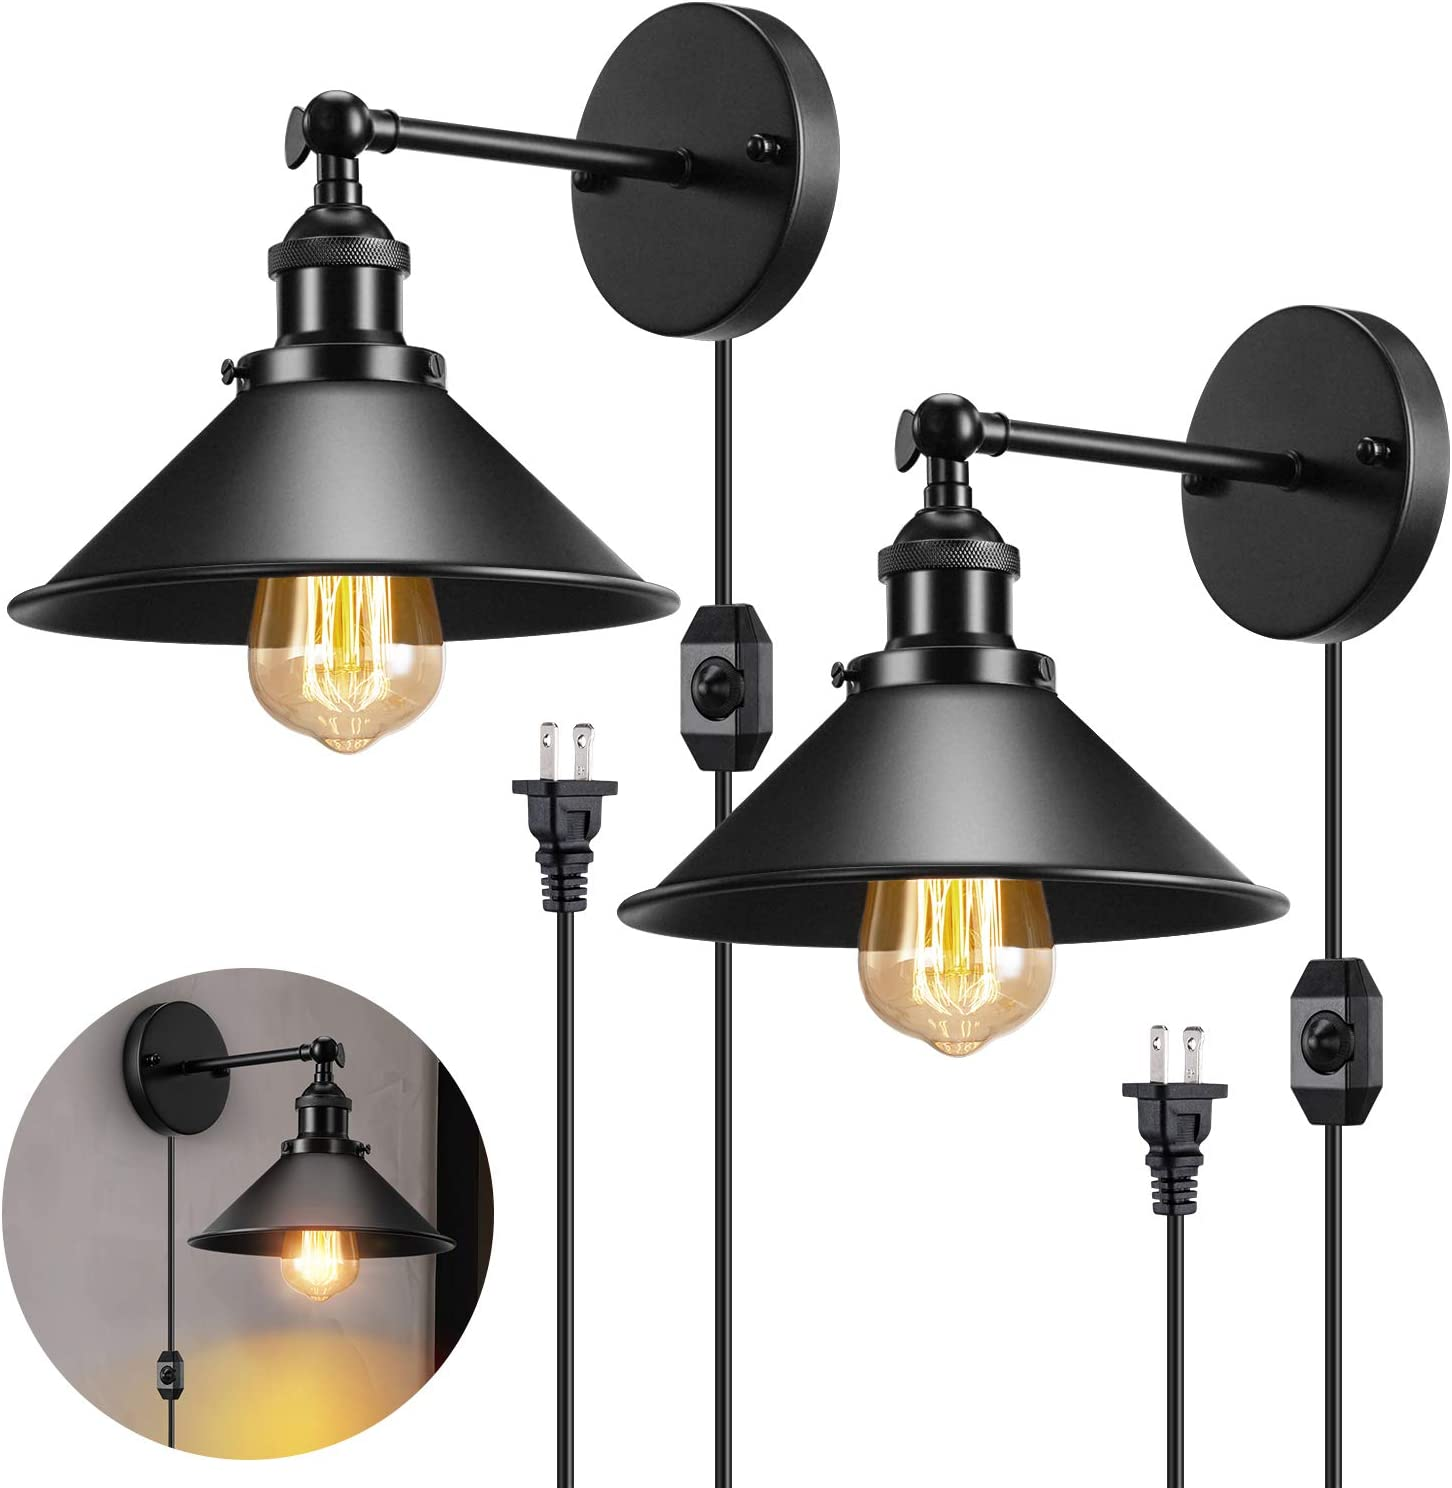 Industrial Plug in Wall Light, Vintage Wall Sconce with 5.9 Ft Plug in Cord, Matte Black Wall Sconce Plug in Light Fixture for Headboard Bedroom Porch 2 Pack